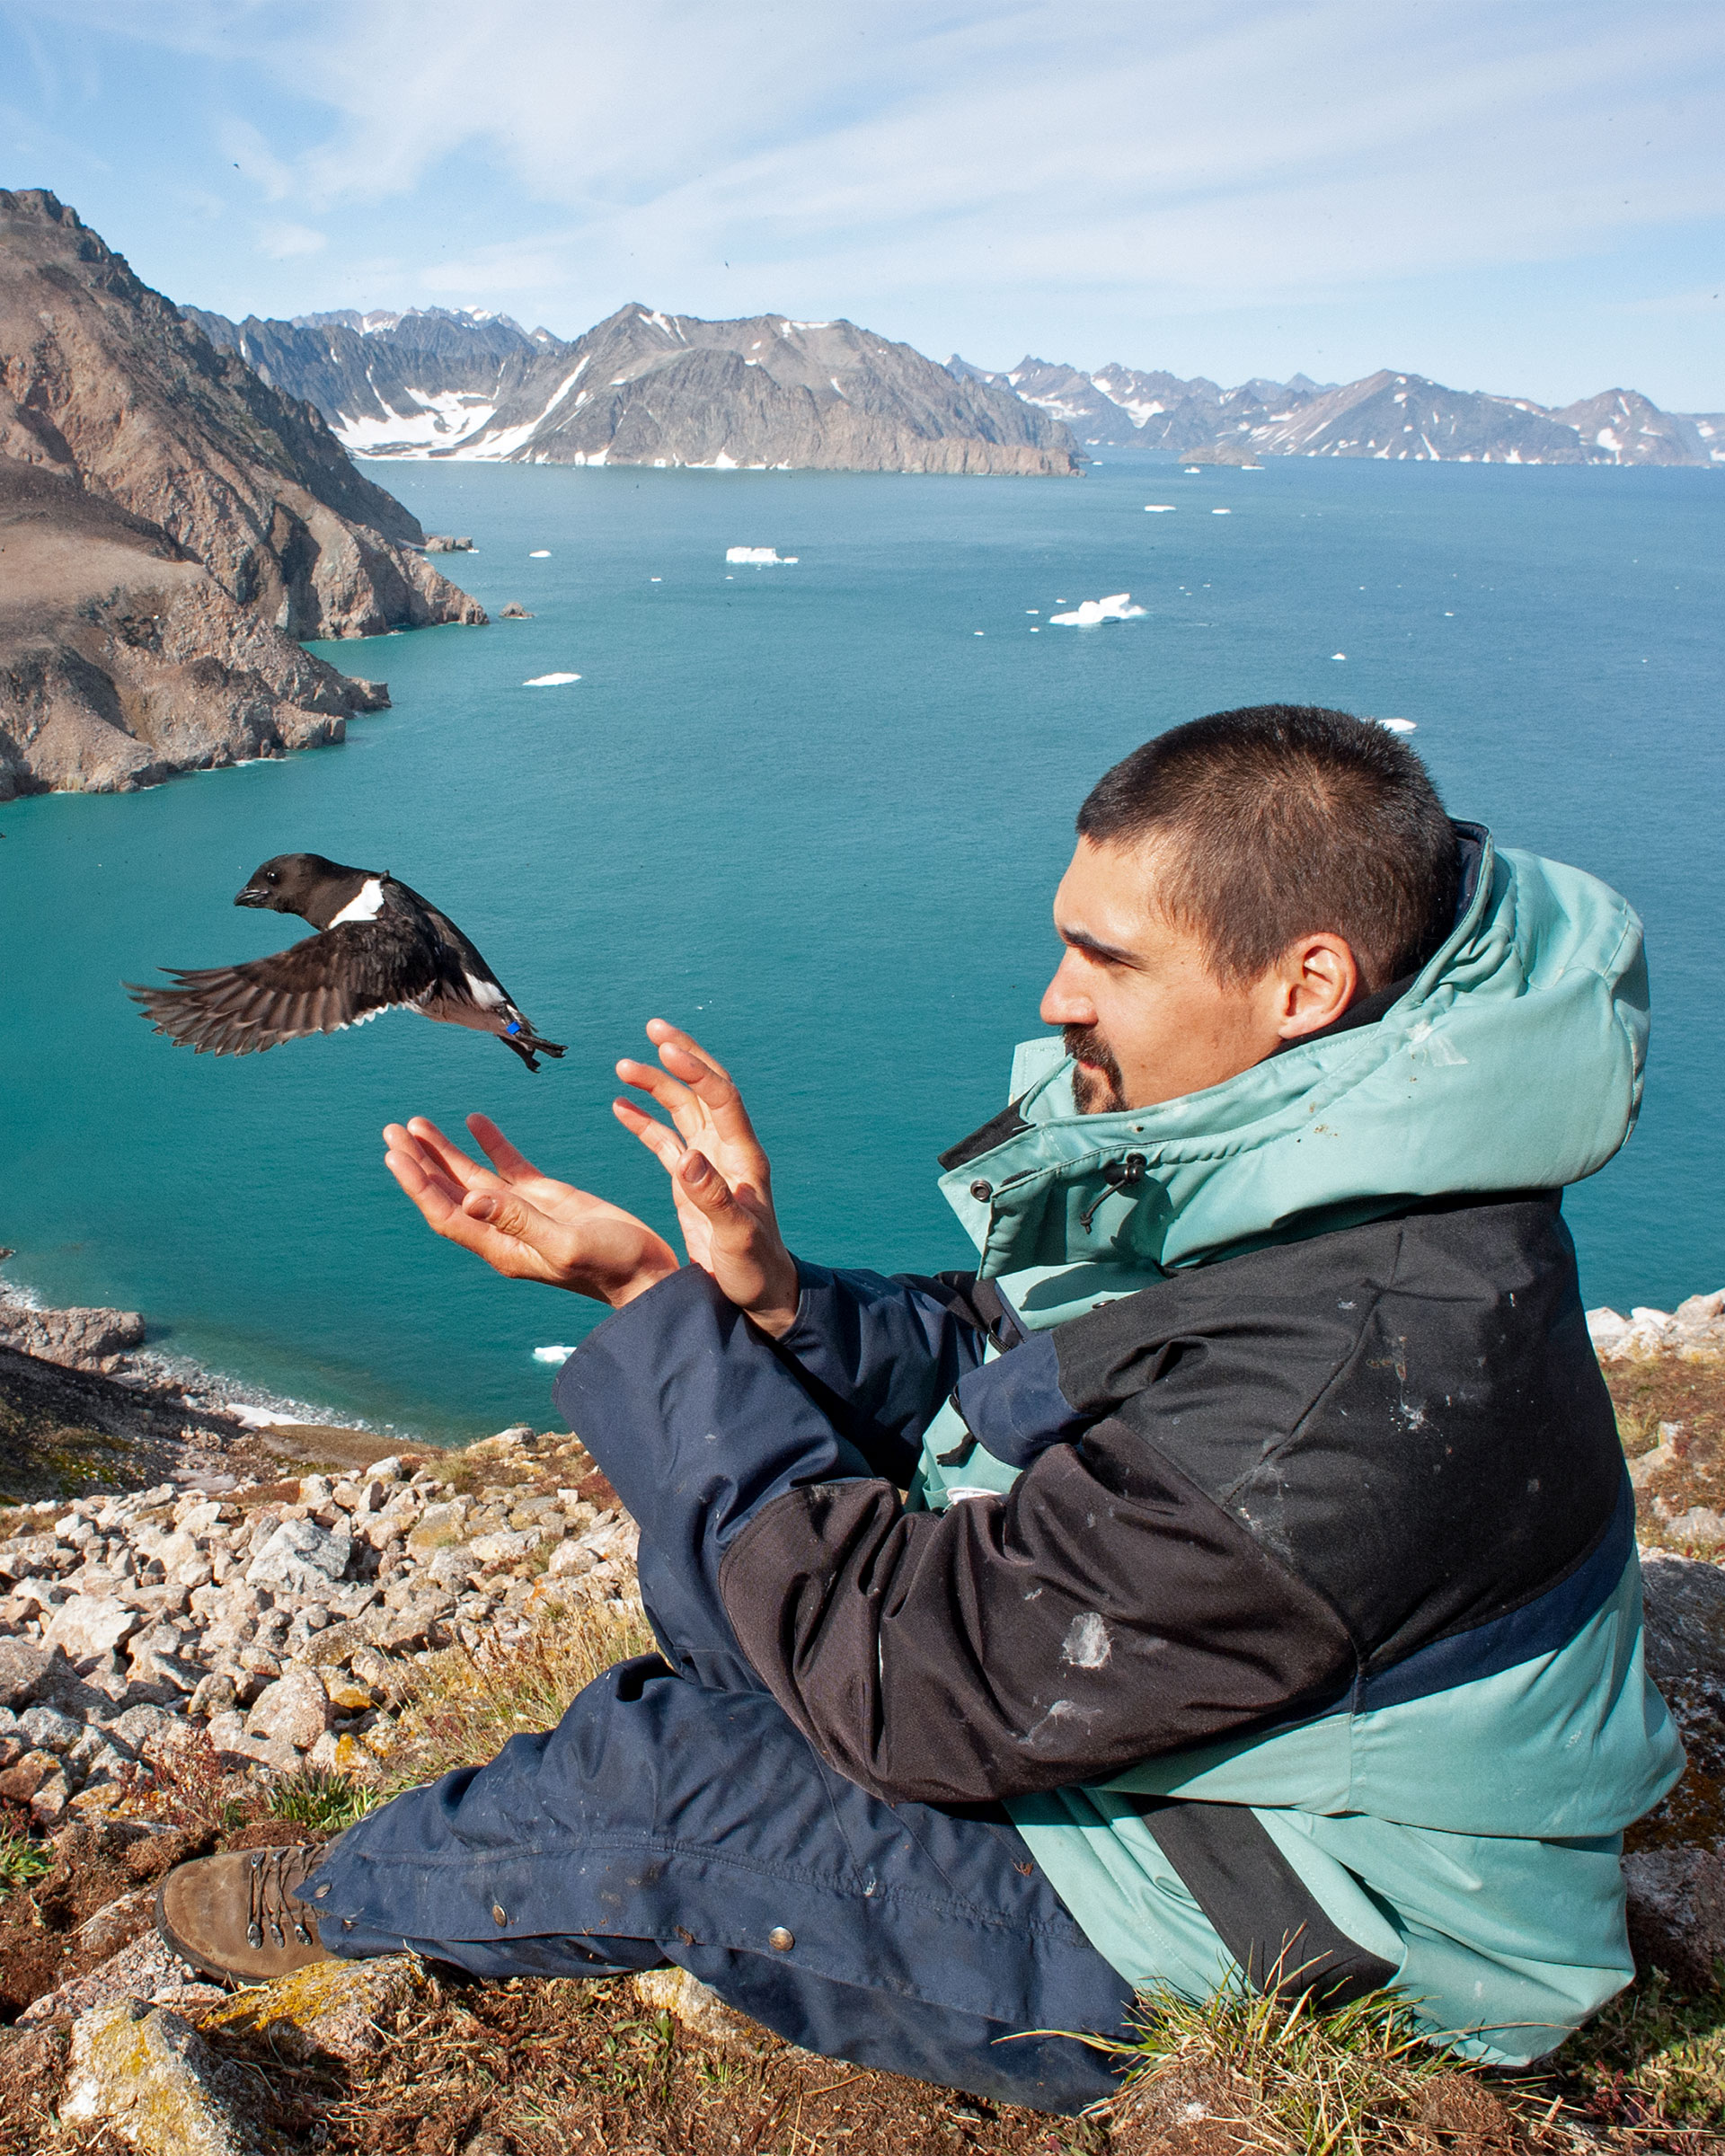 A man sitting on a cliff and wearing a green and black parka releases a Dovekie with open hands. The Dovekie, a seabird, is the length of the man's hand and is mostly black with small white patches on the shoulder and tail. There is a tiny, bright blue band visible on its left leg.